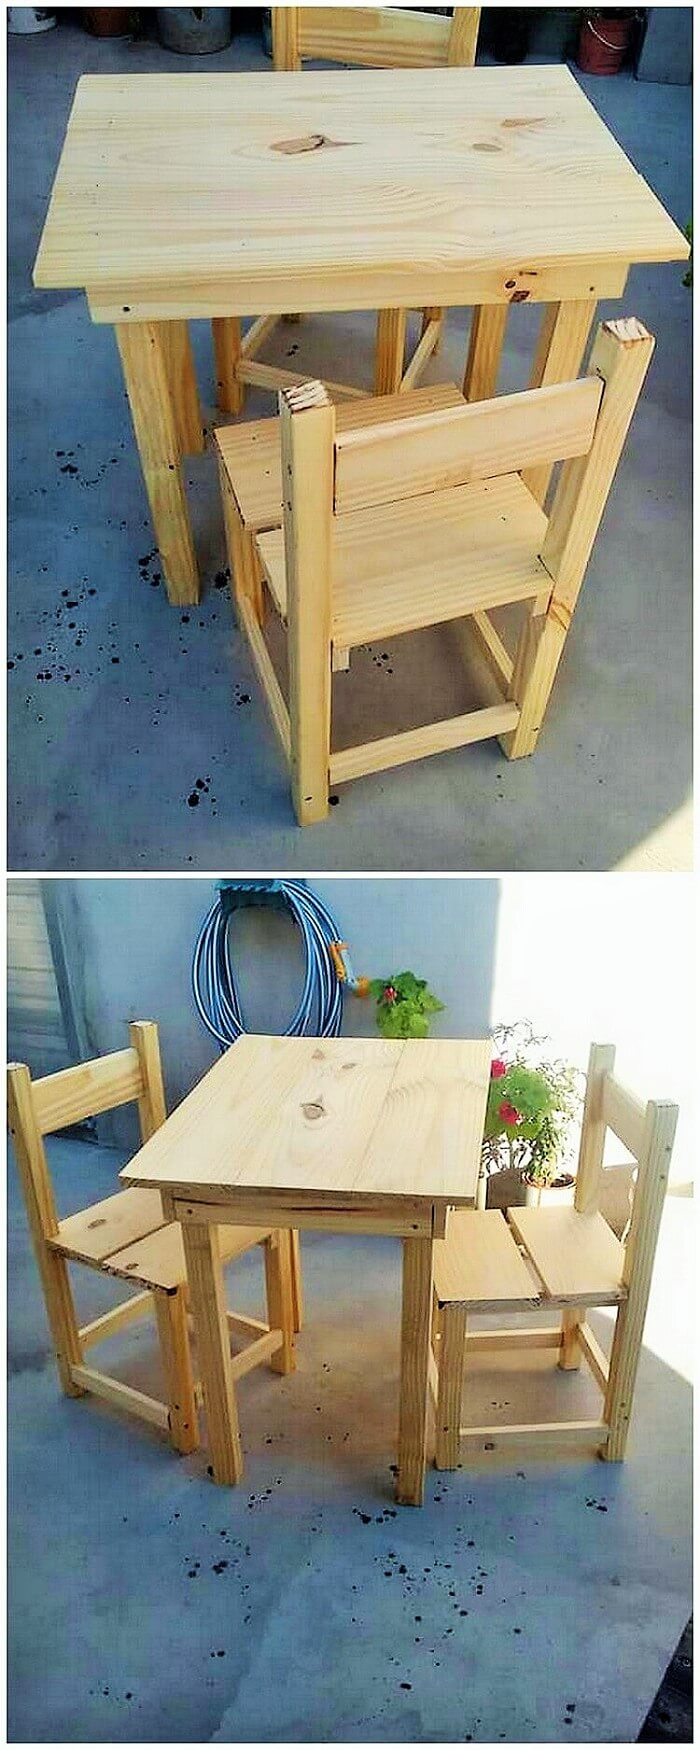 Wood-Pallet-Table-and-Chairs (2)